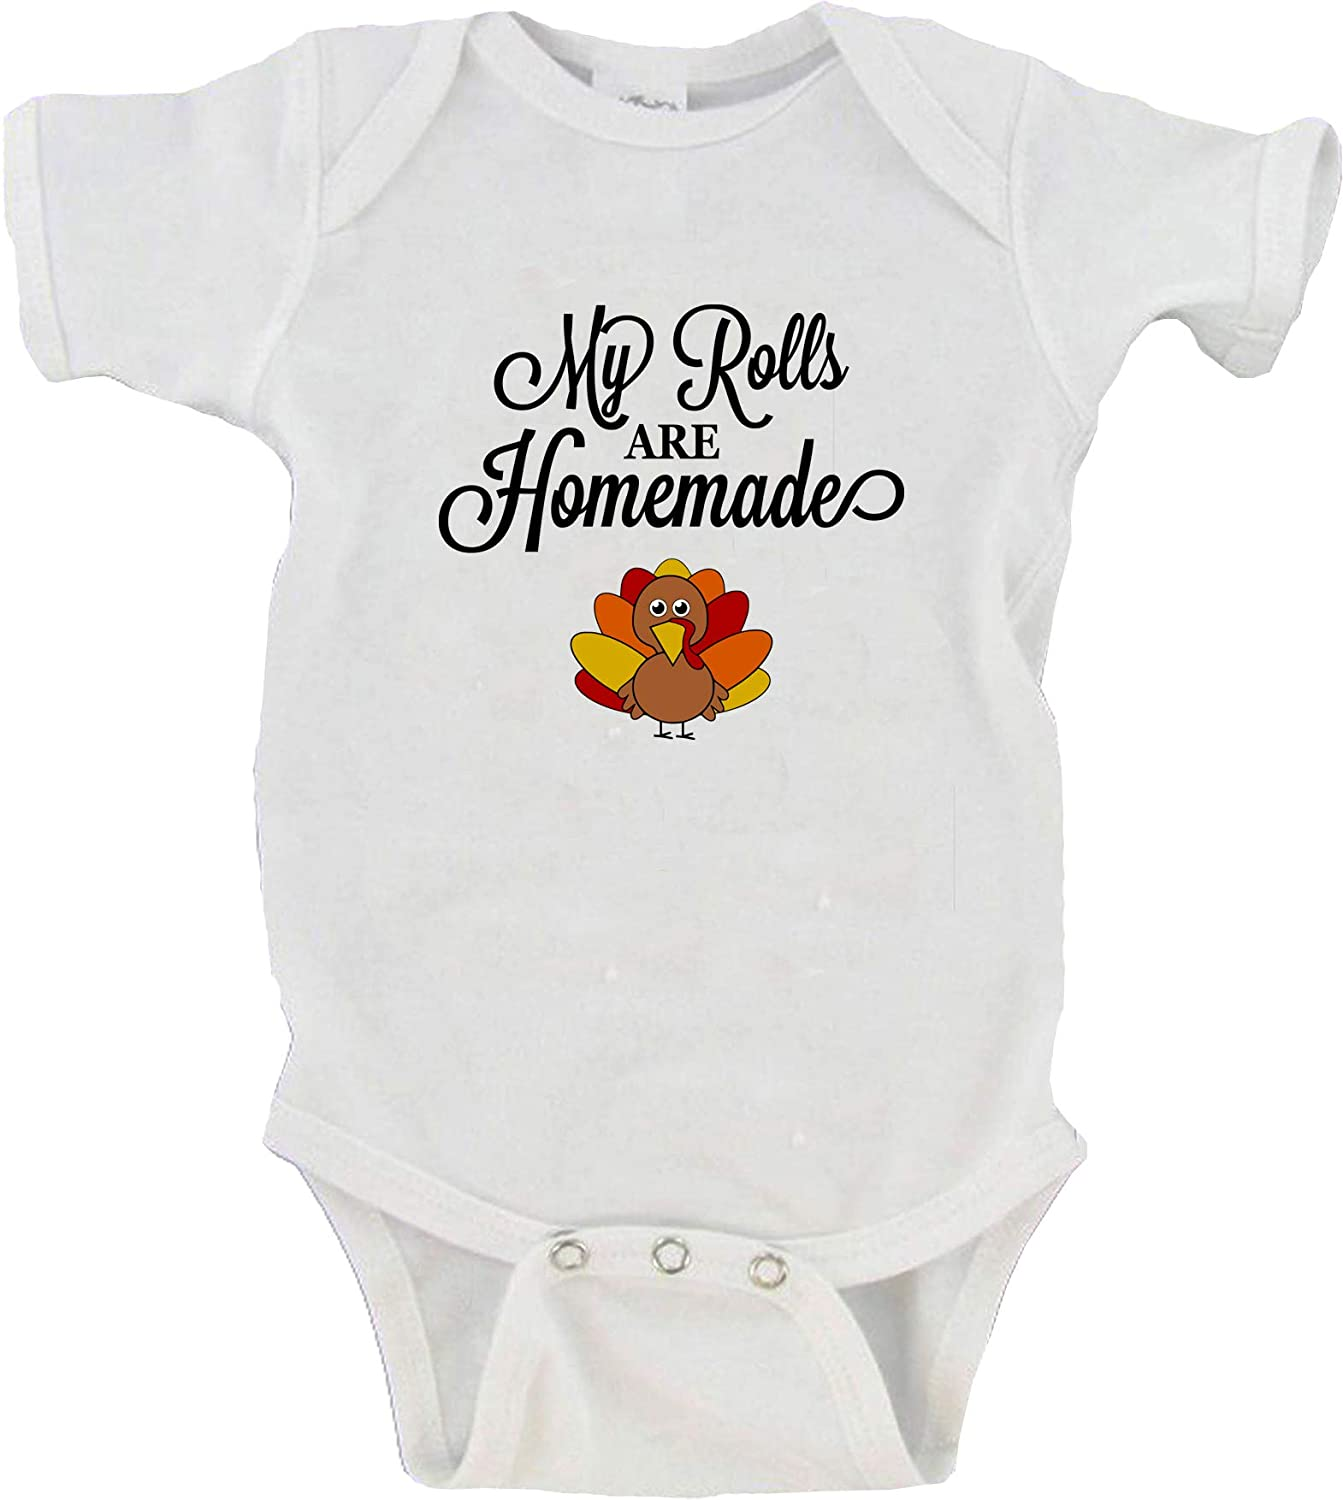 Baby Girl Outfit Handmade Gift Thanksgiving My Rolls are Homemade Funny 3 Piece Set with Tutu and Headband